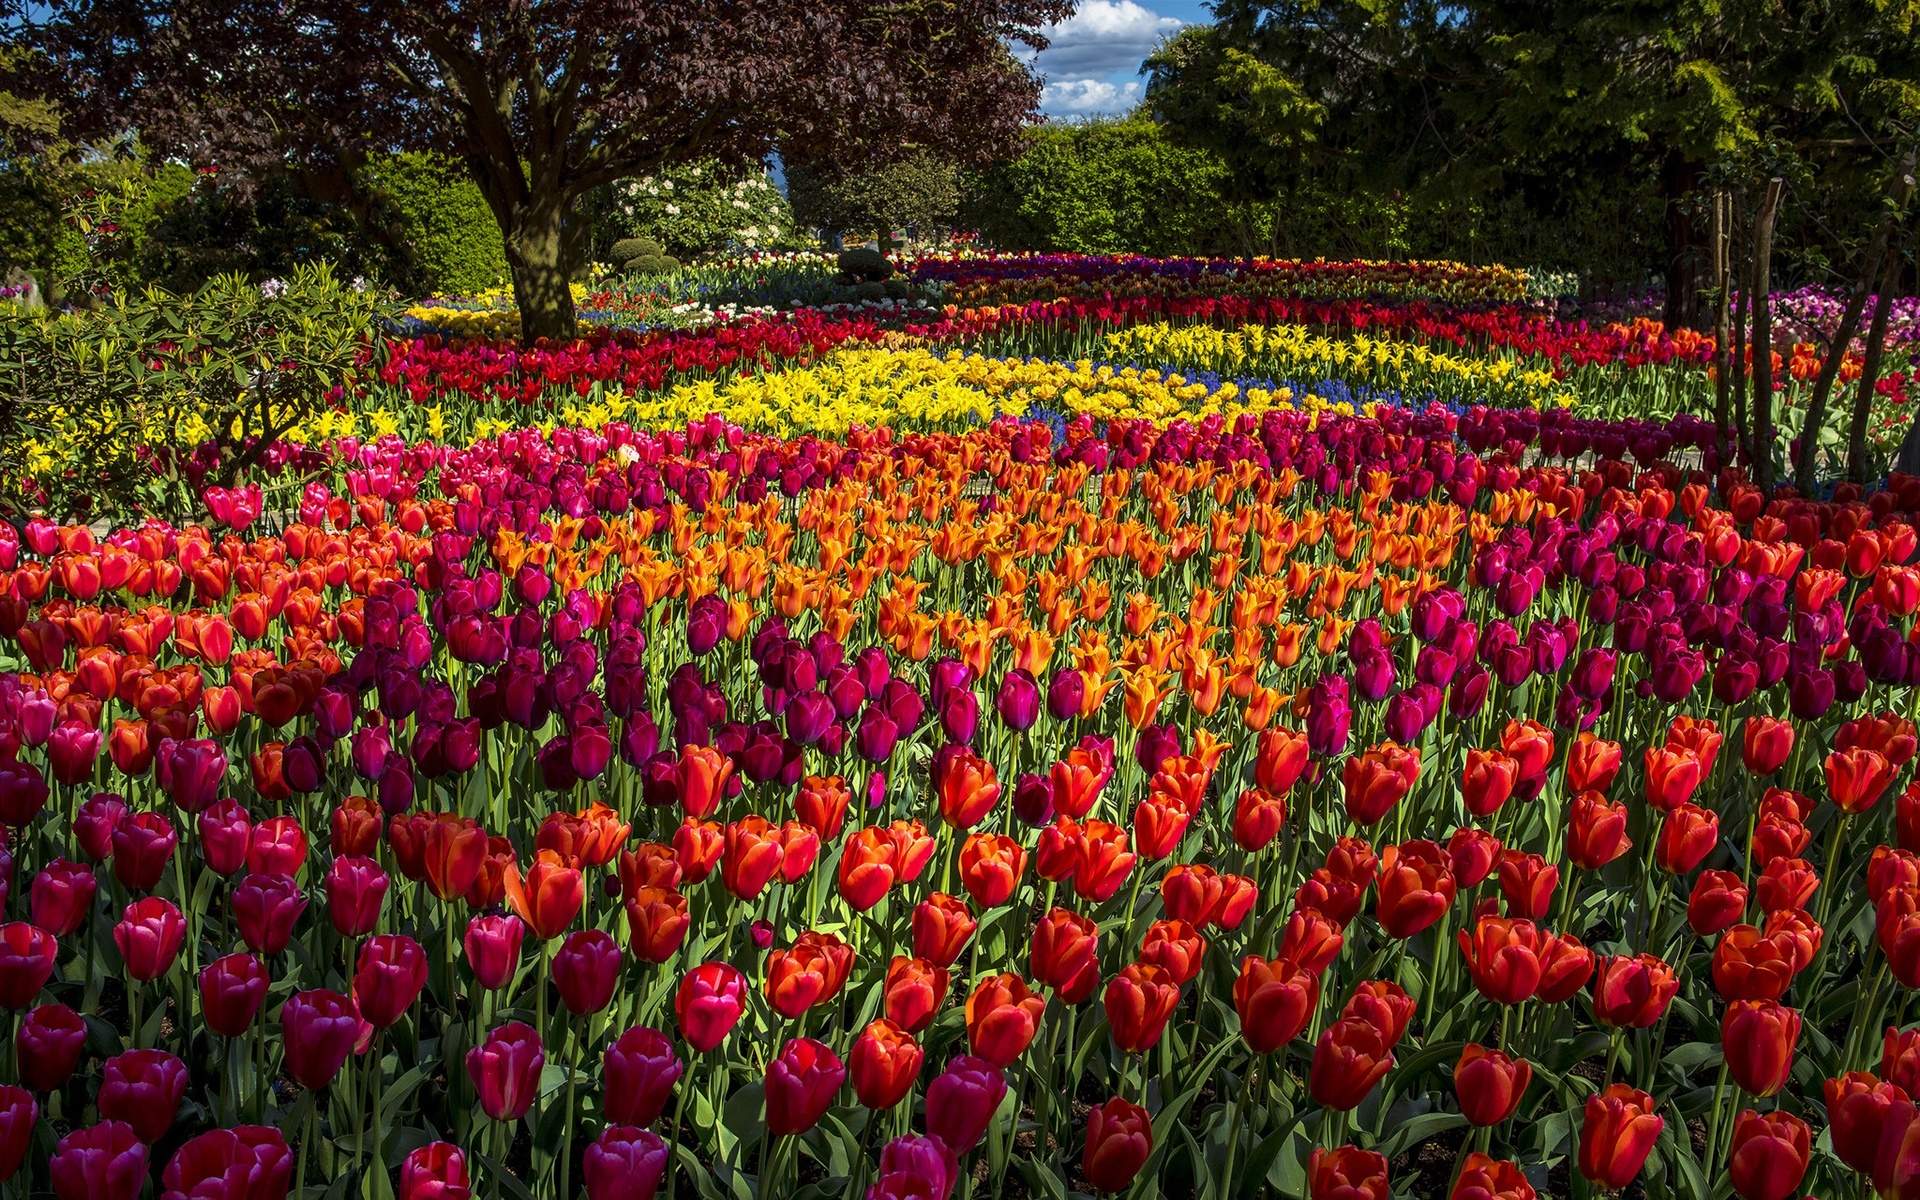 Tulips, colorful, trees, park 1920x1200 wallpaper